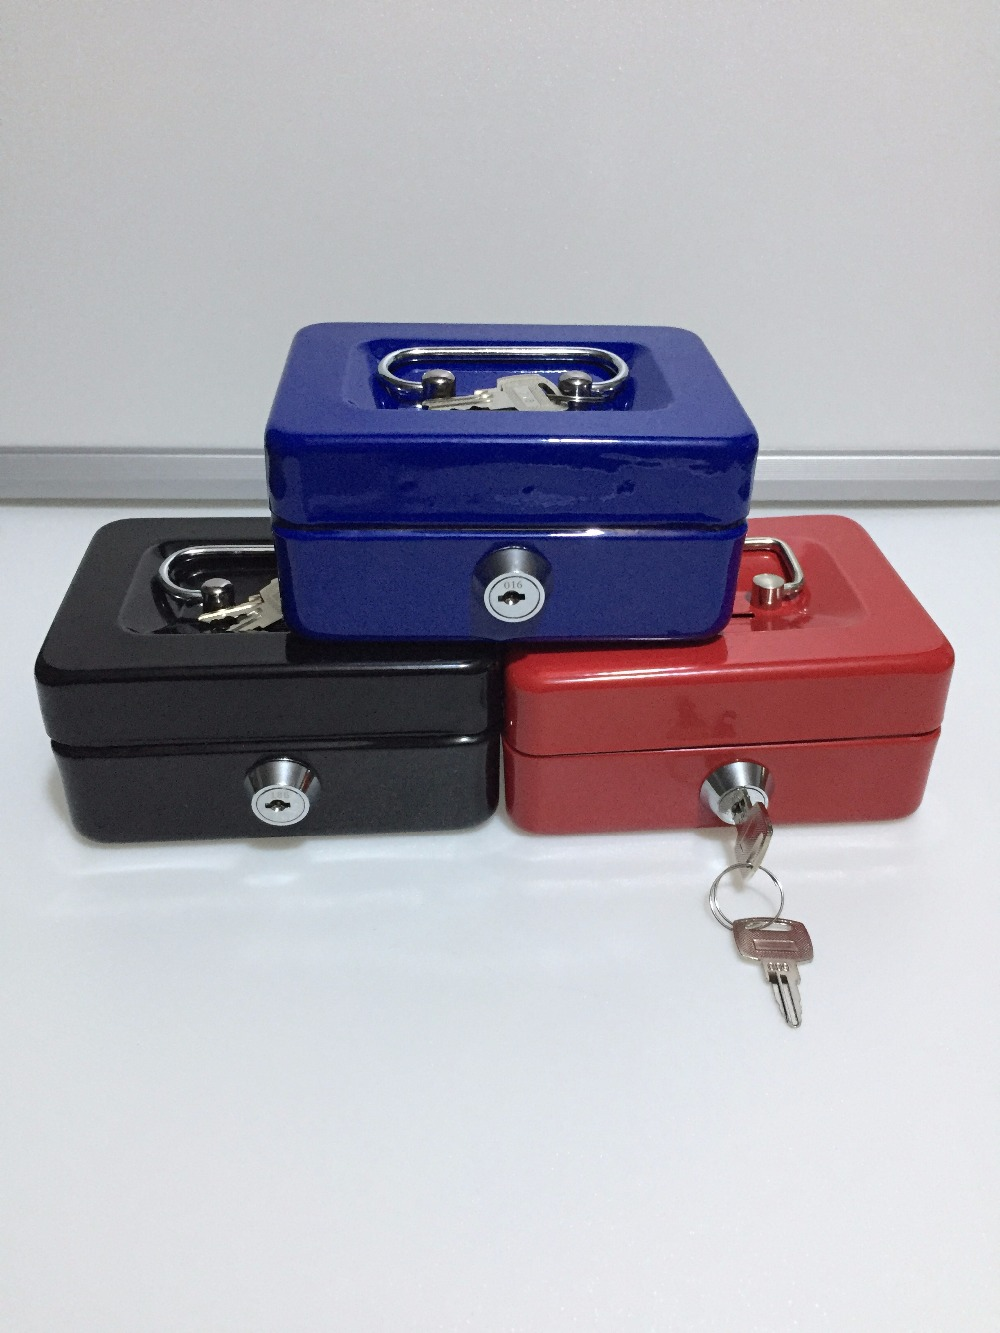 12.5cm*9.5cm*6cm Mini Small Steel Safe Key Open Box Store Content Boxes Paper Piggy Bank Card Document Safes